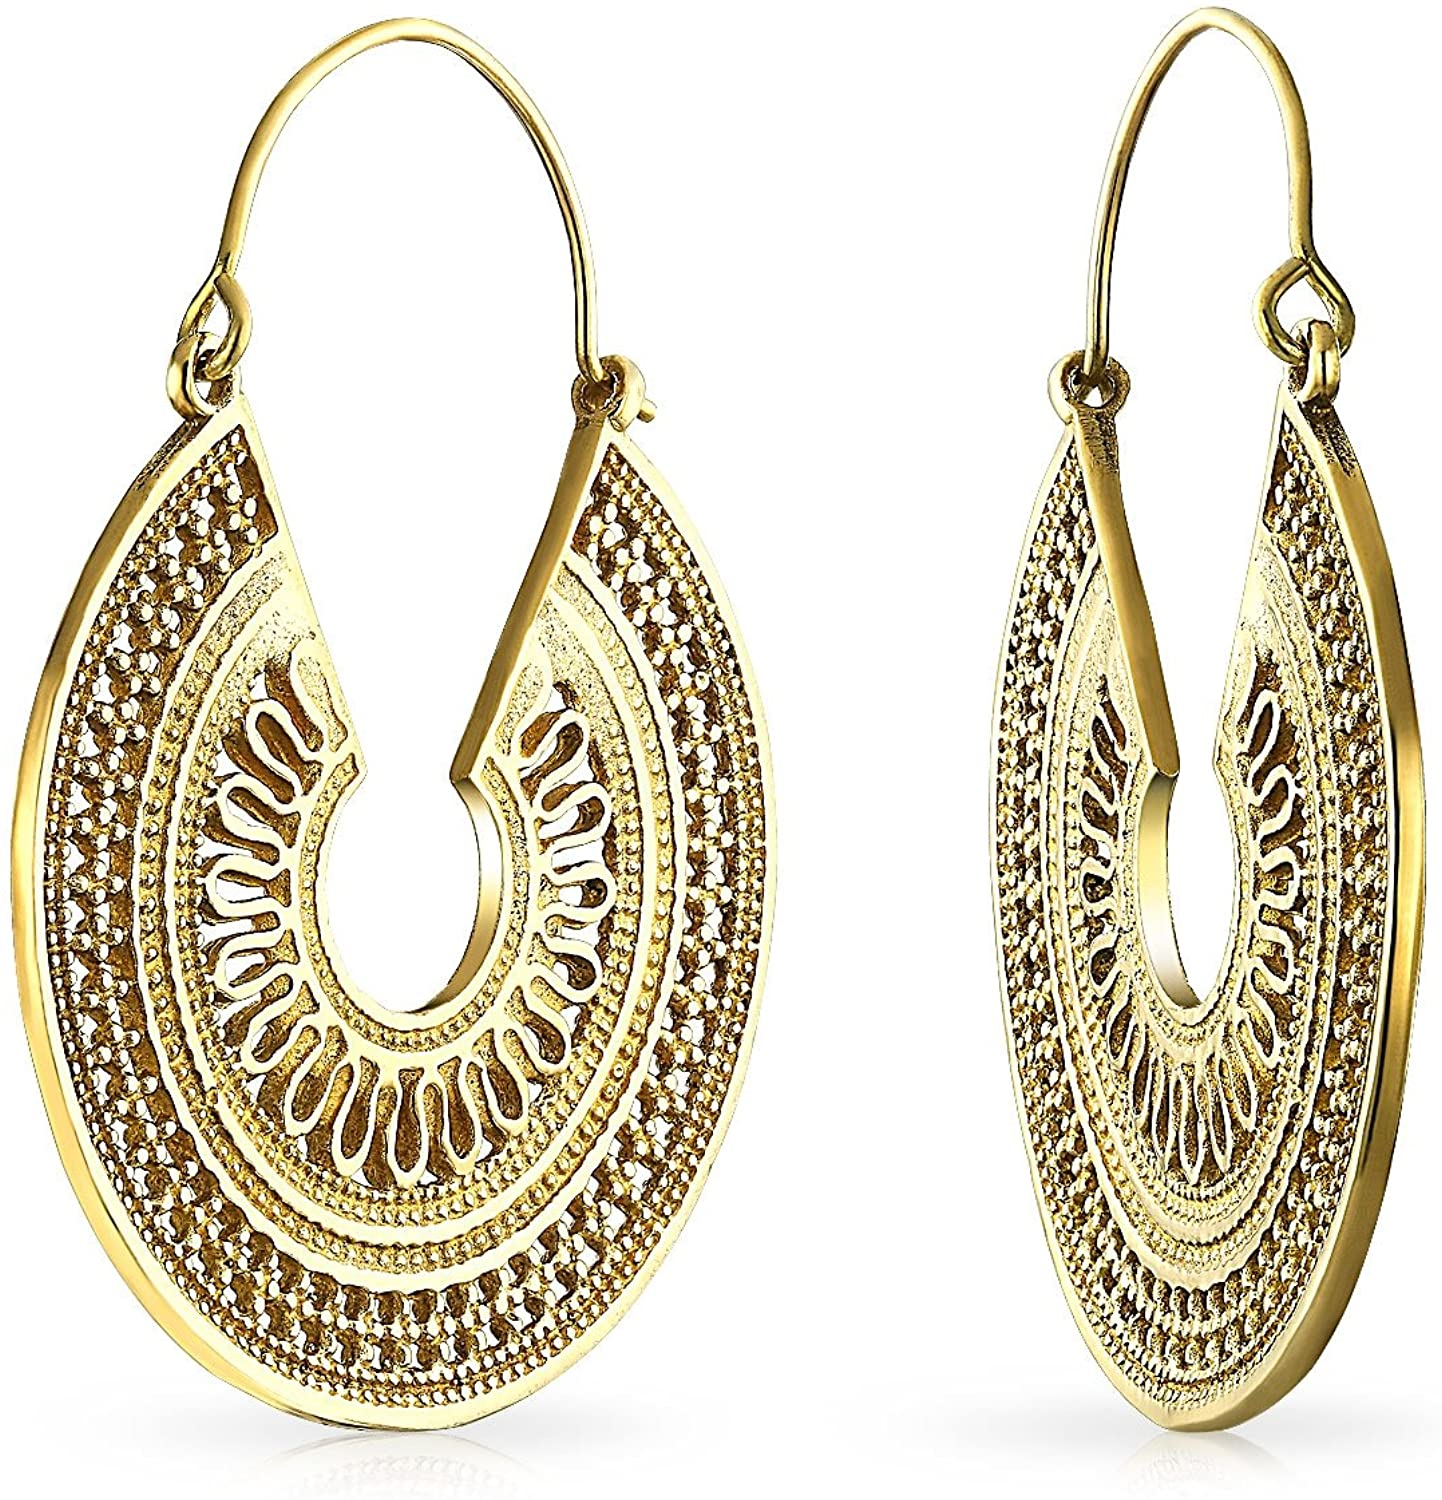 Boho Bali Tribal Style Filigree Crescent Round Flat Shaped Large Hoop Earrings For Women Gold Plated Metal